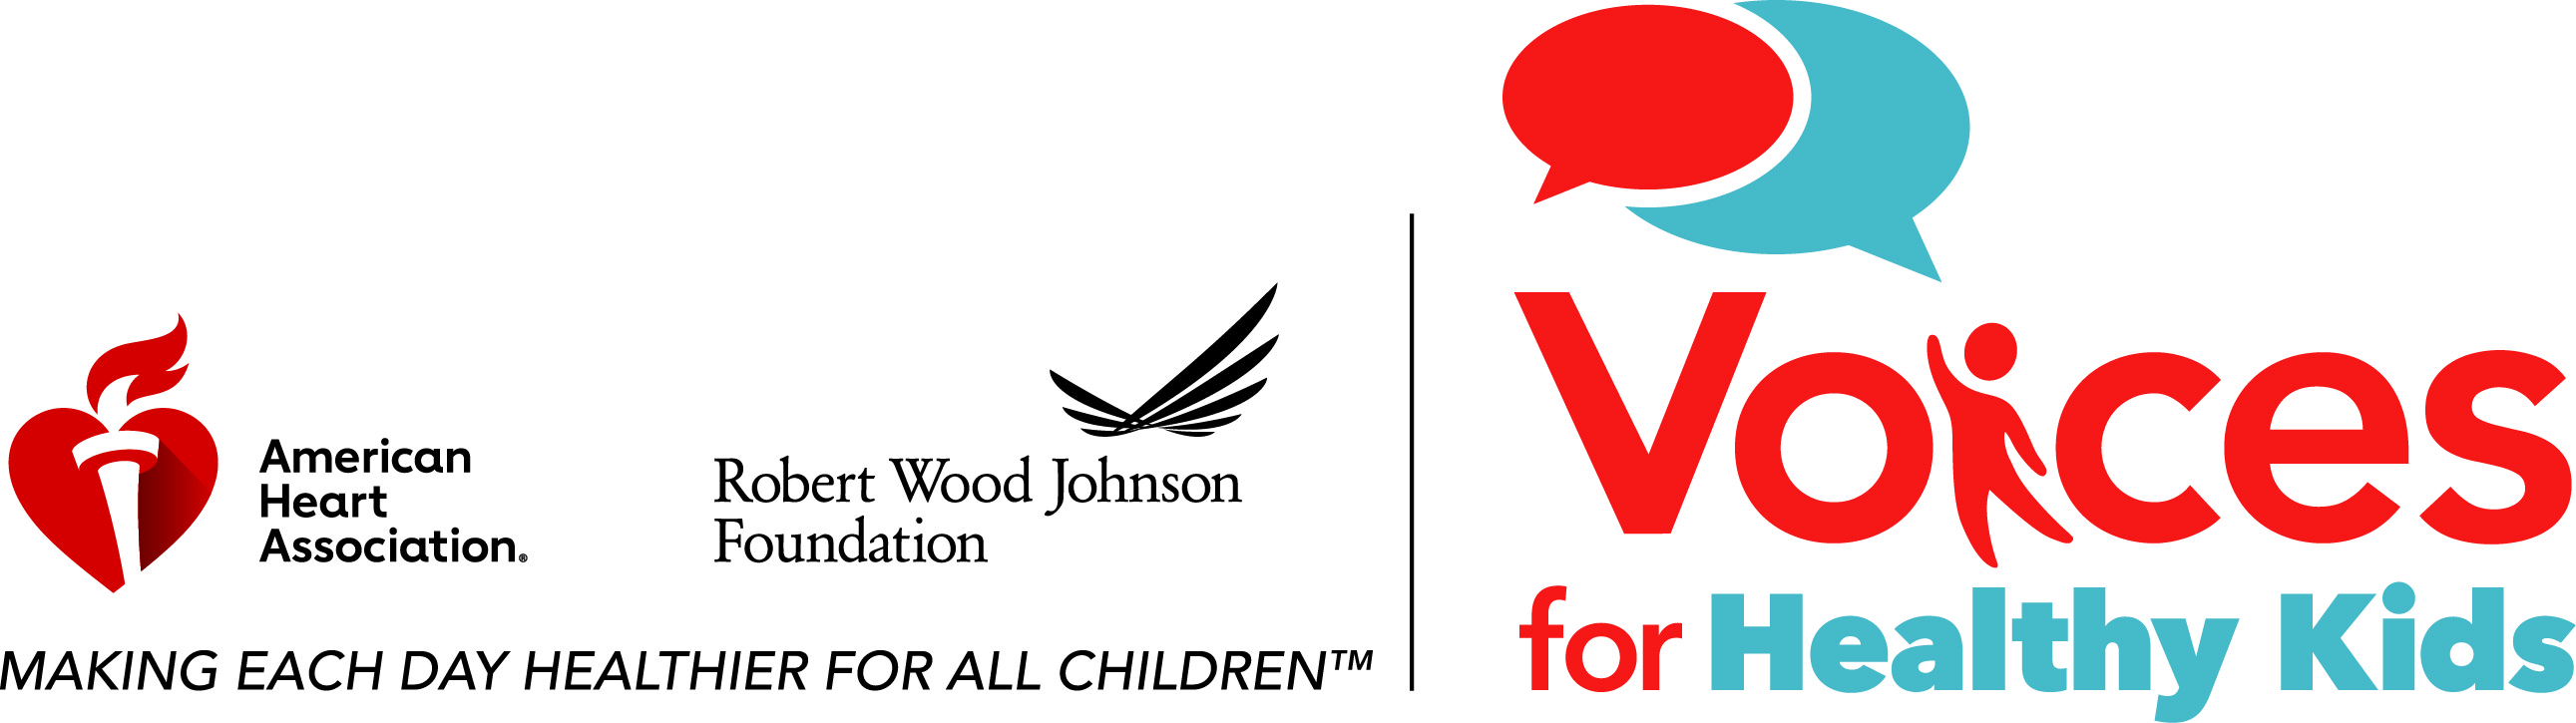 Voices for Healthy Kids Announces 2019-2020 Funding Awards for National Organizations Leading Issue Coalitions and IEE Special Project Workgroups